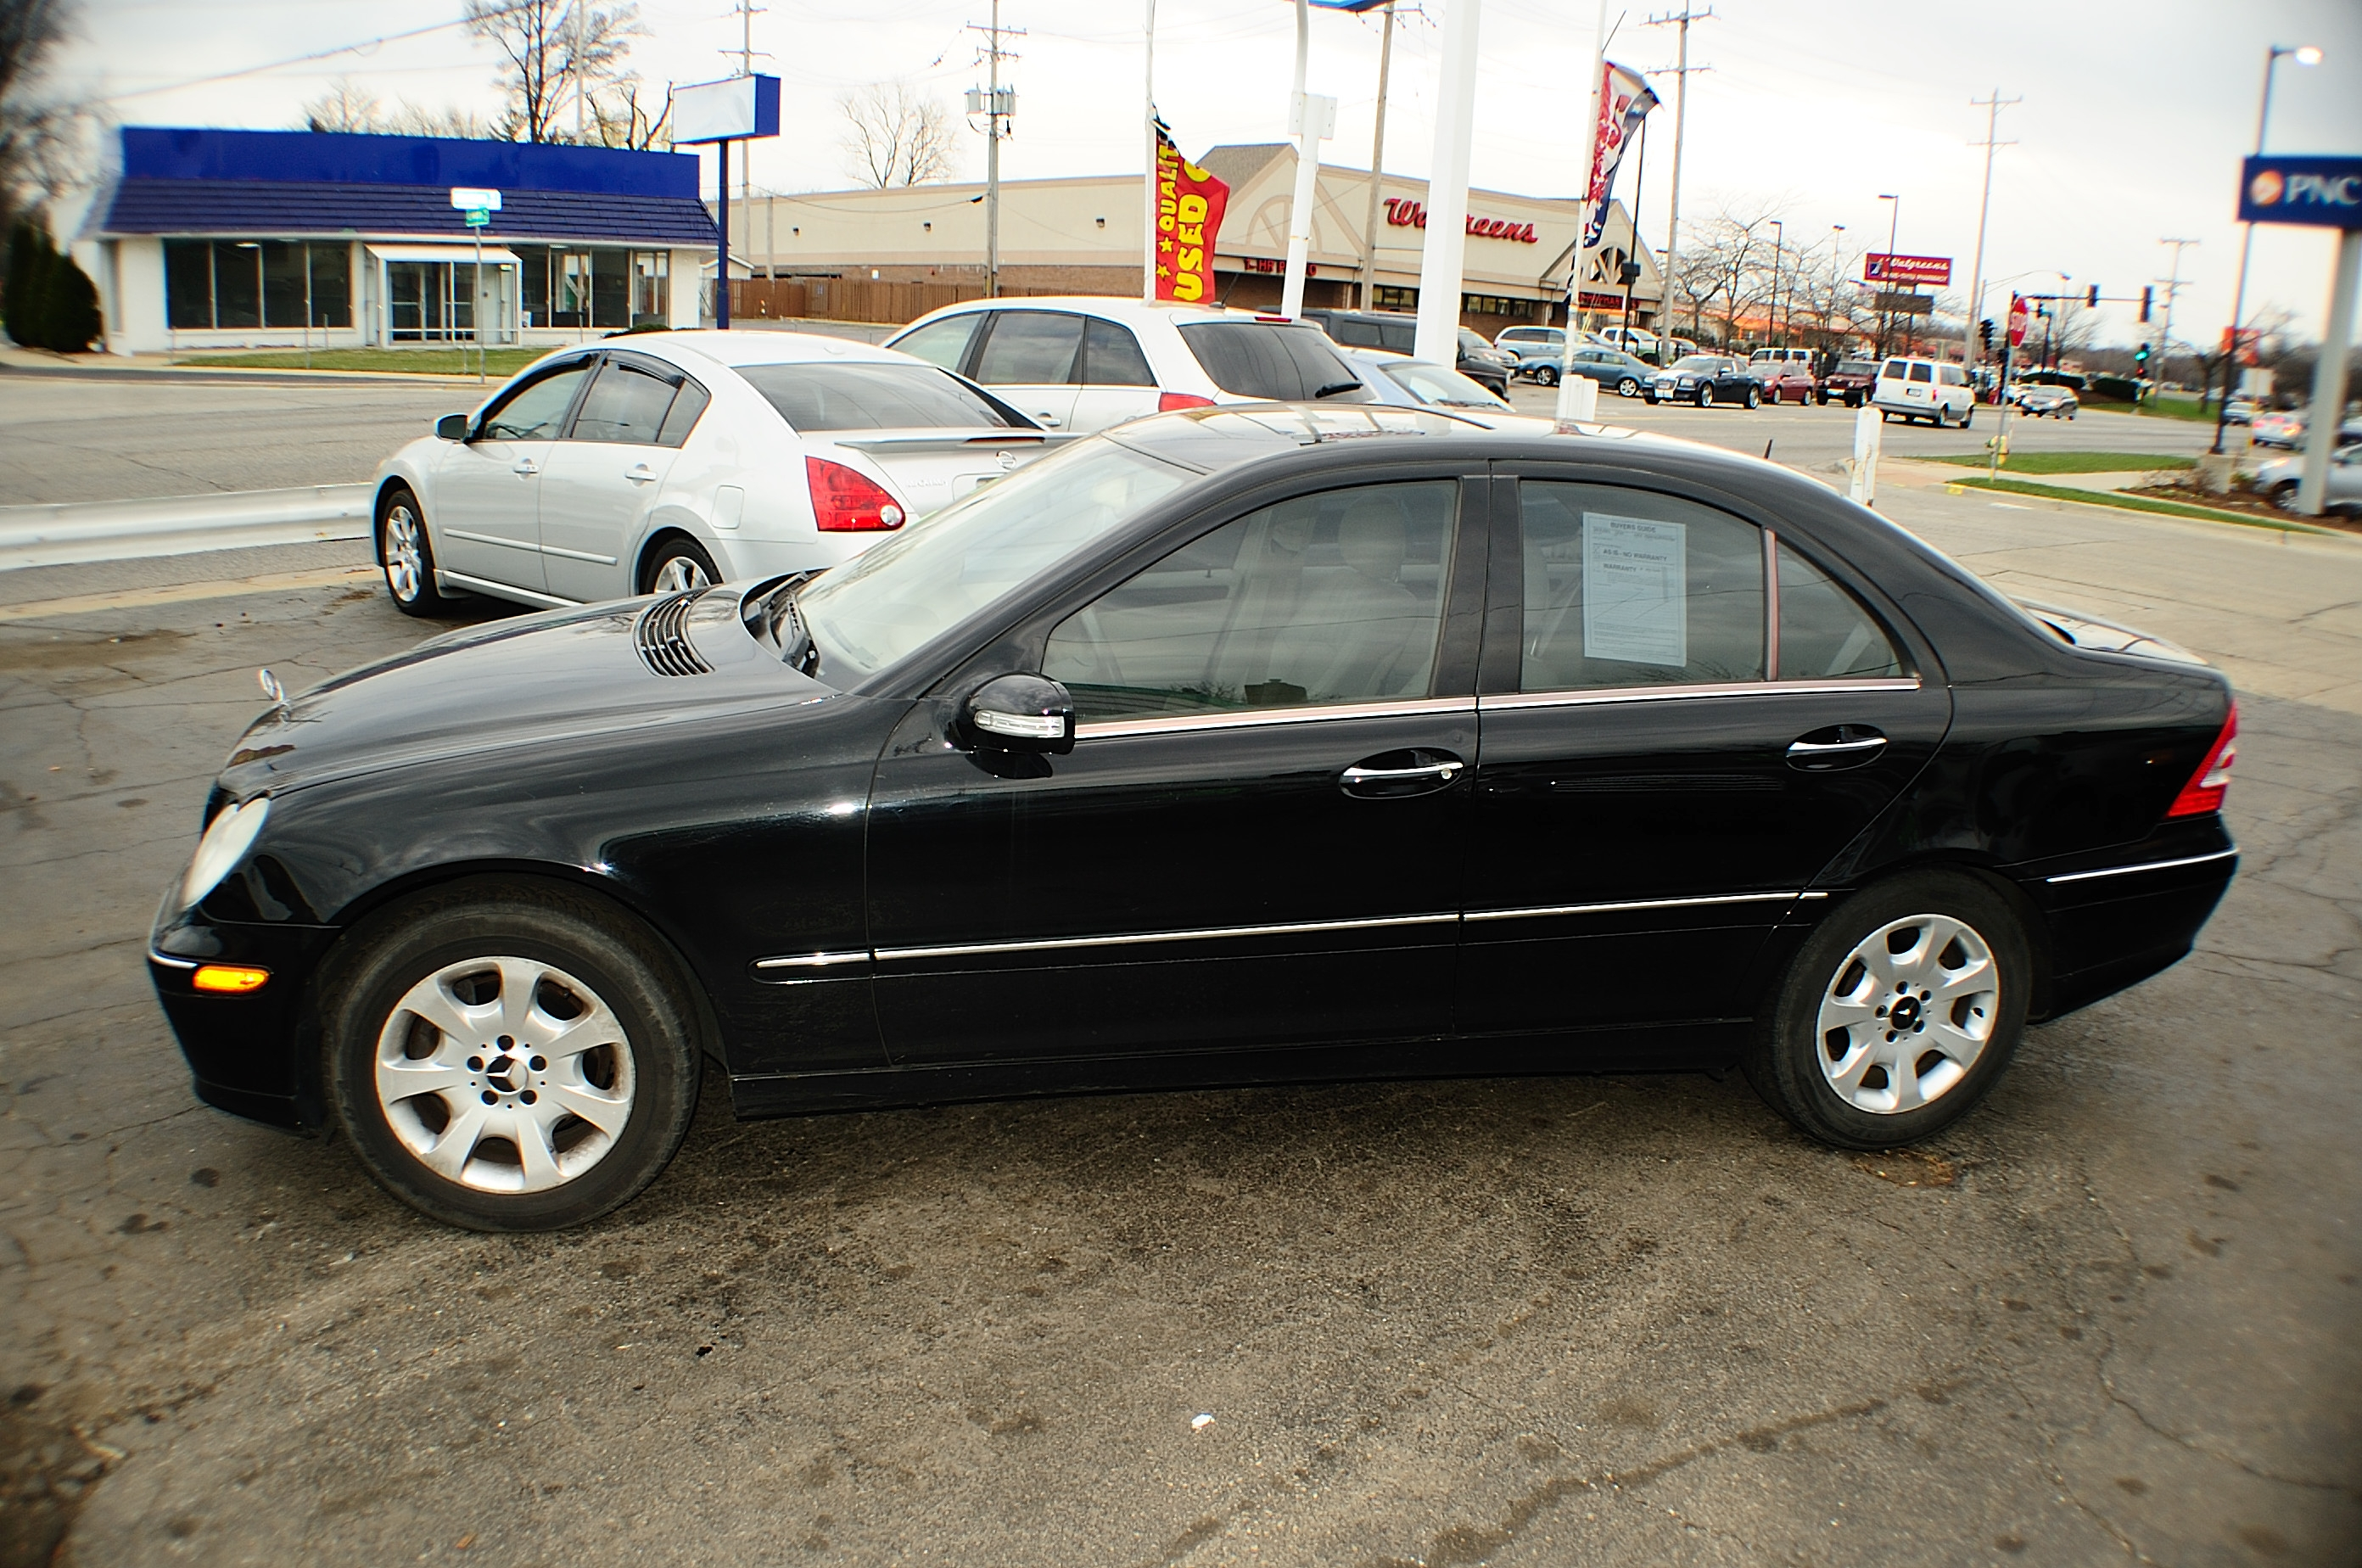 2005 Mercedes C240 Black 4matic 4Dr Sedan sale used car Antioch Zion Waukegan